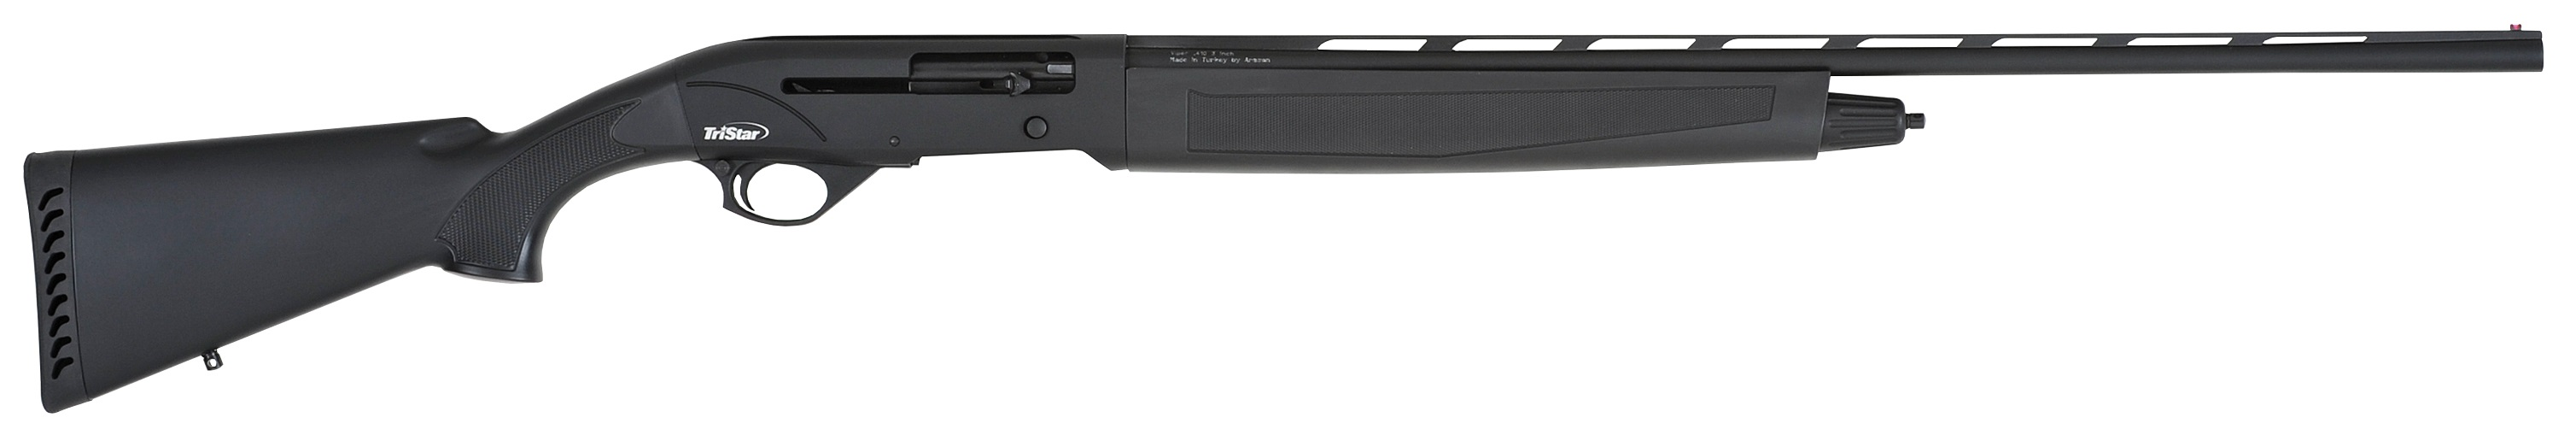 TriStar Sporting Arms VIPER G2 YOUTH 410 BORE